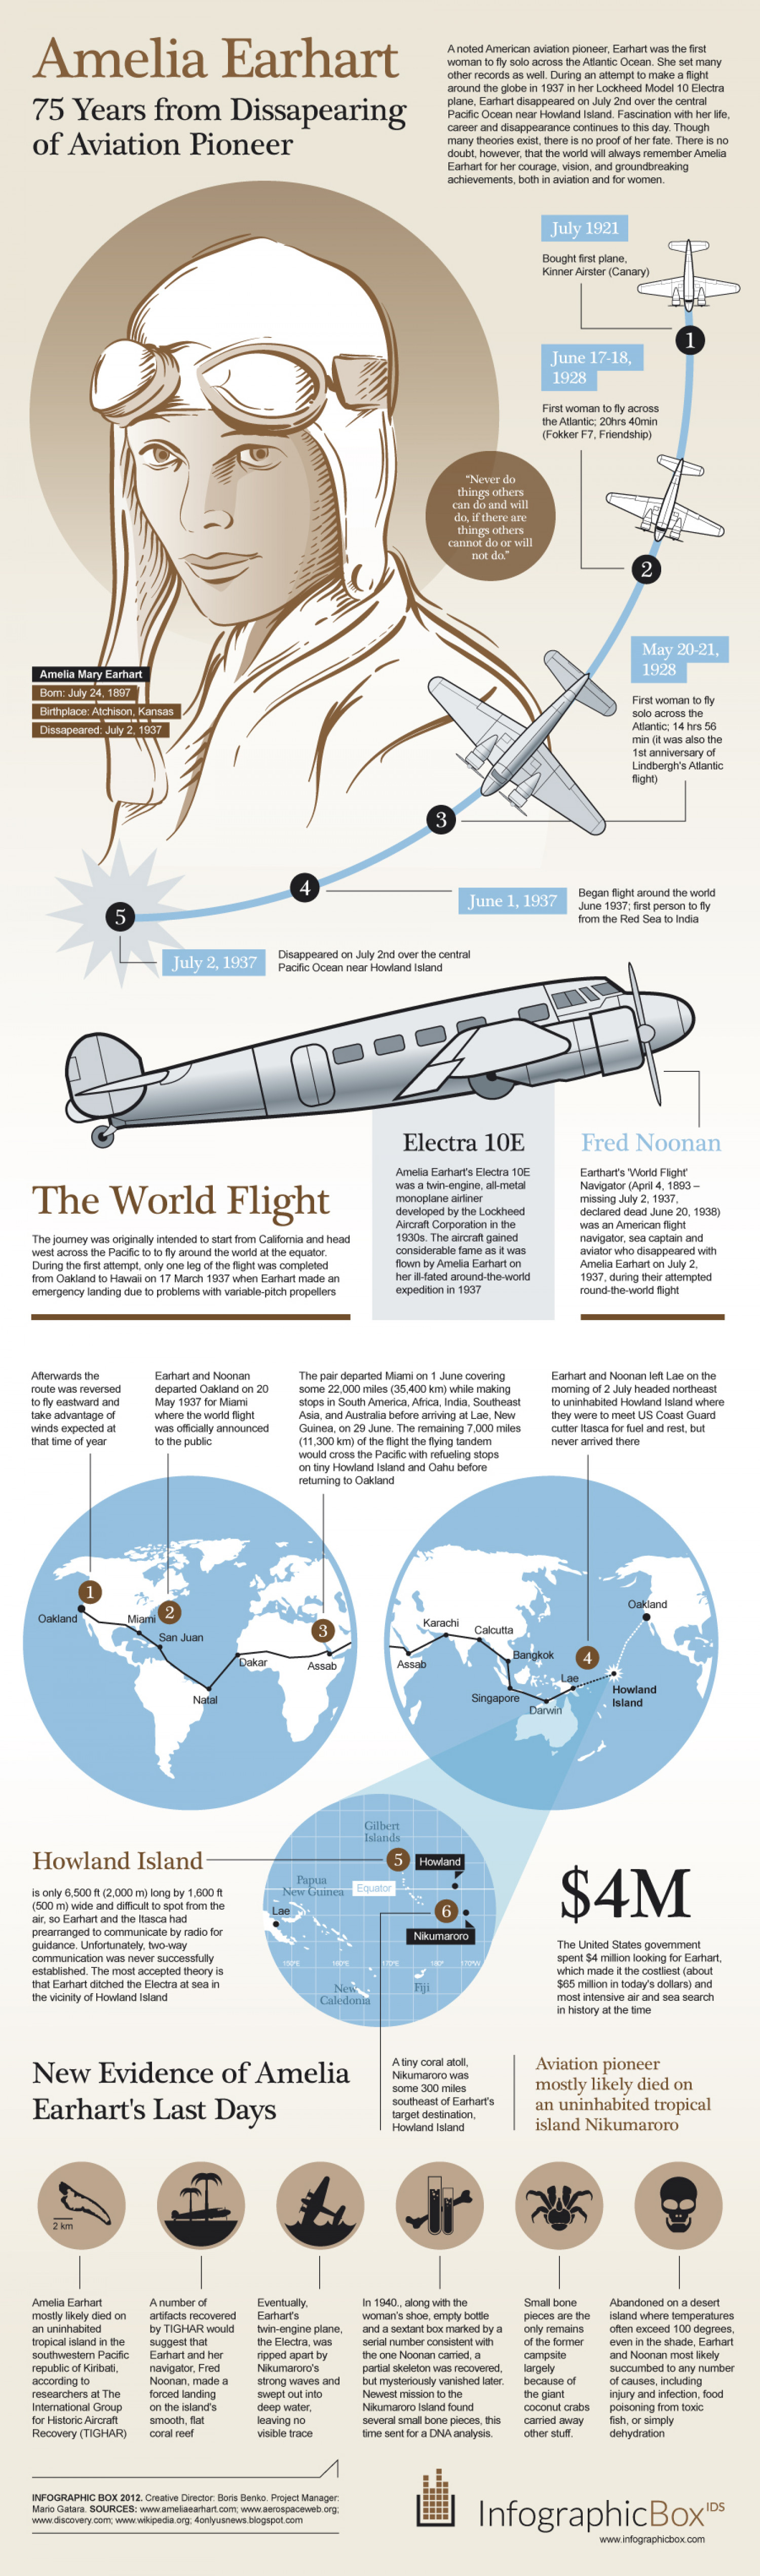 Amelia Earhart Disappearance - 75th Anniversary Infographic